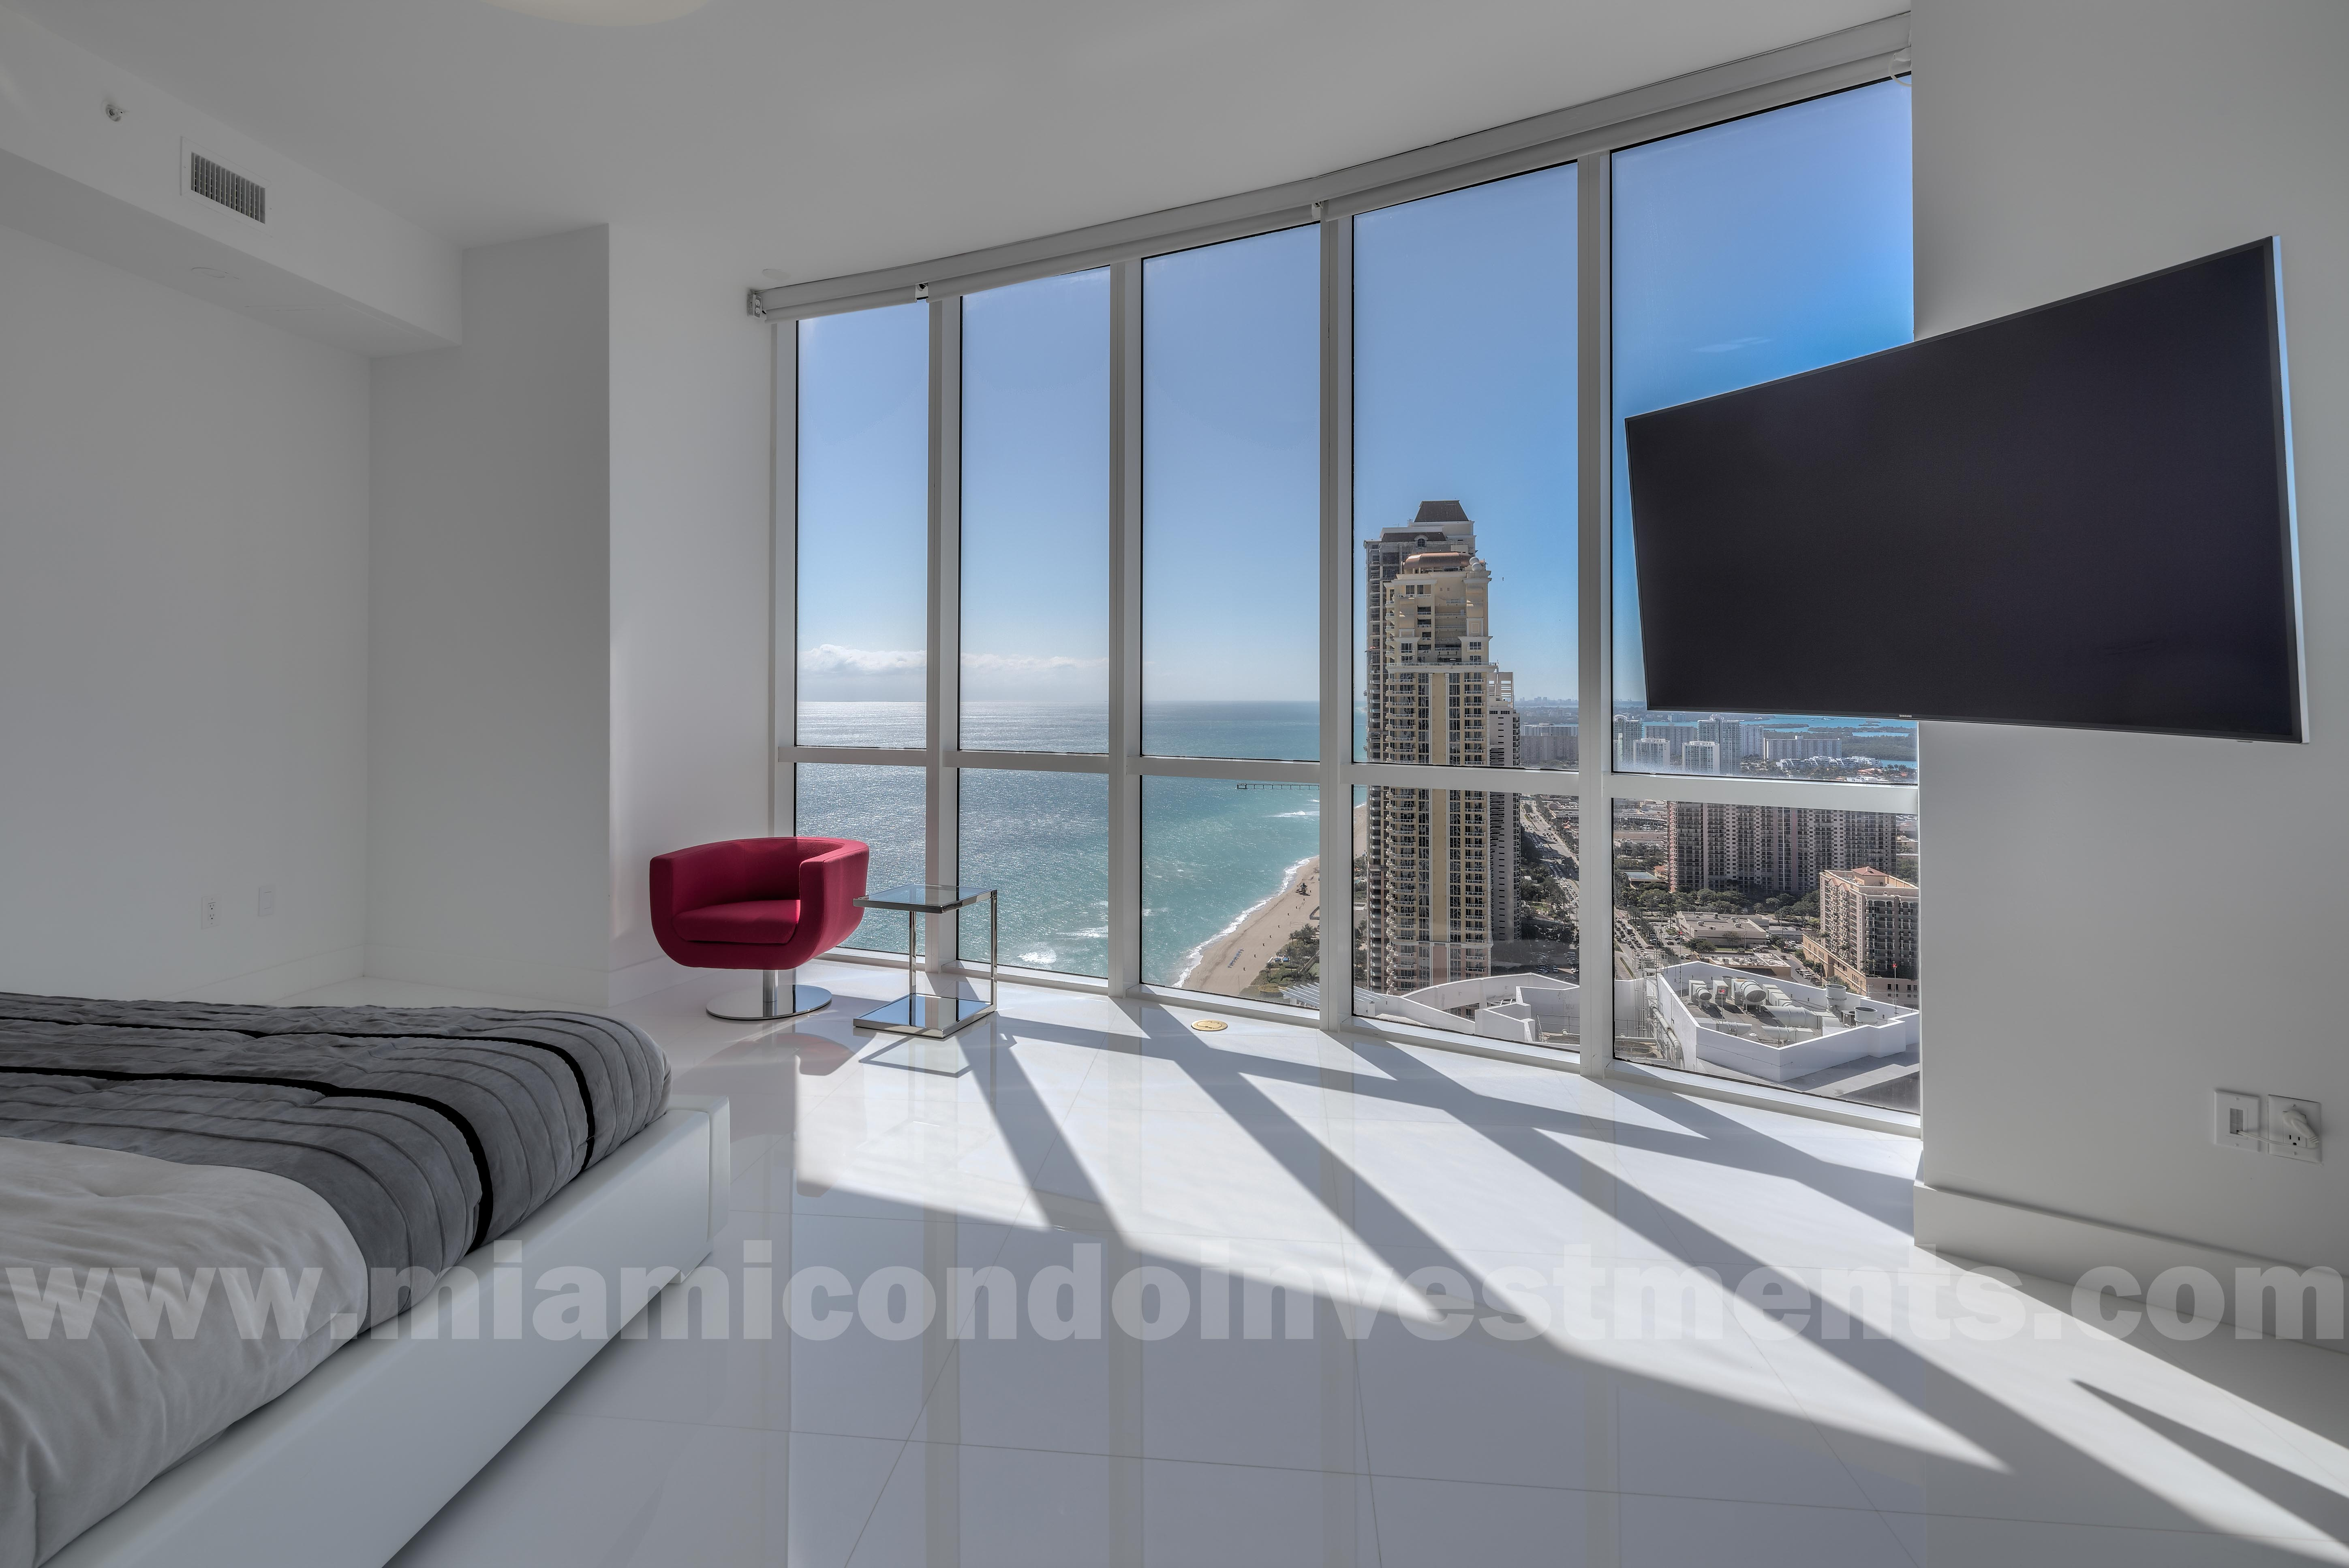 view of ocean and coastline from master bedroom